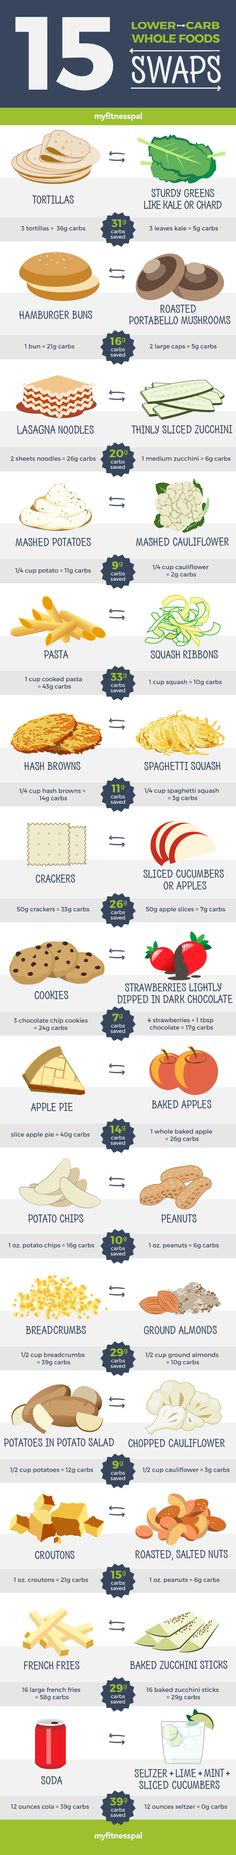 Food swaps to make healthy living easier. Now we don't have to eliminate foods and restrict ourselves. A substitution goes a long way.